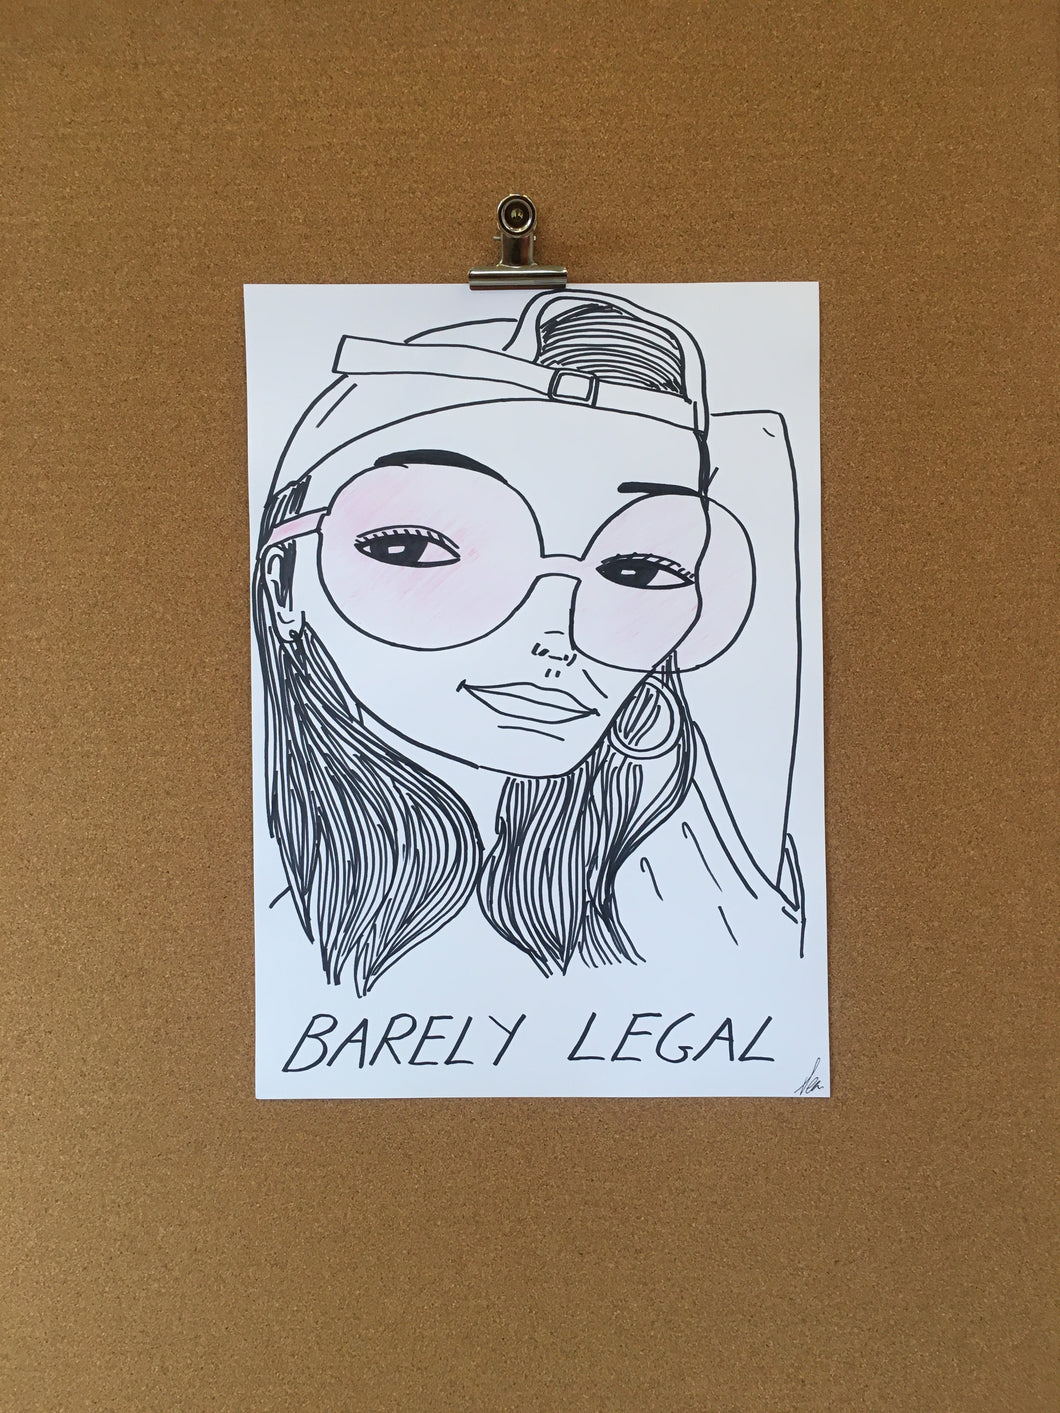 Badly Drawn Barely Legal  (3 of 3) - Original Drawing - A3.